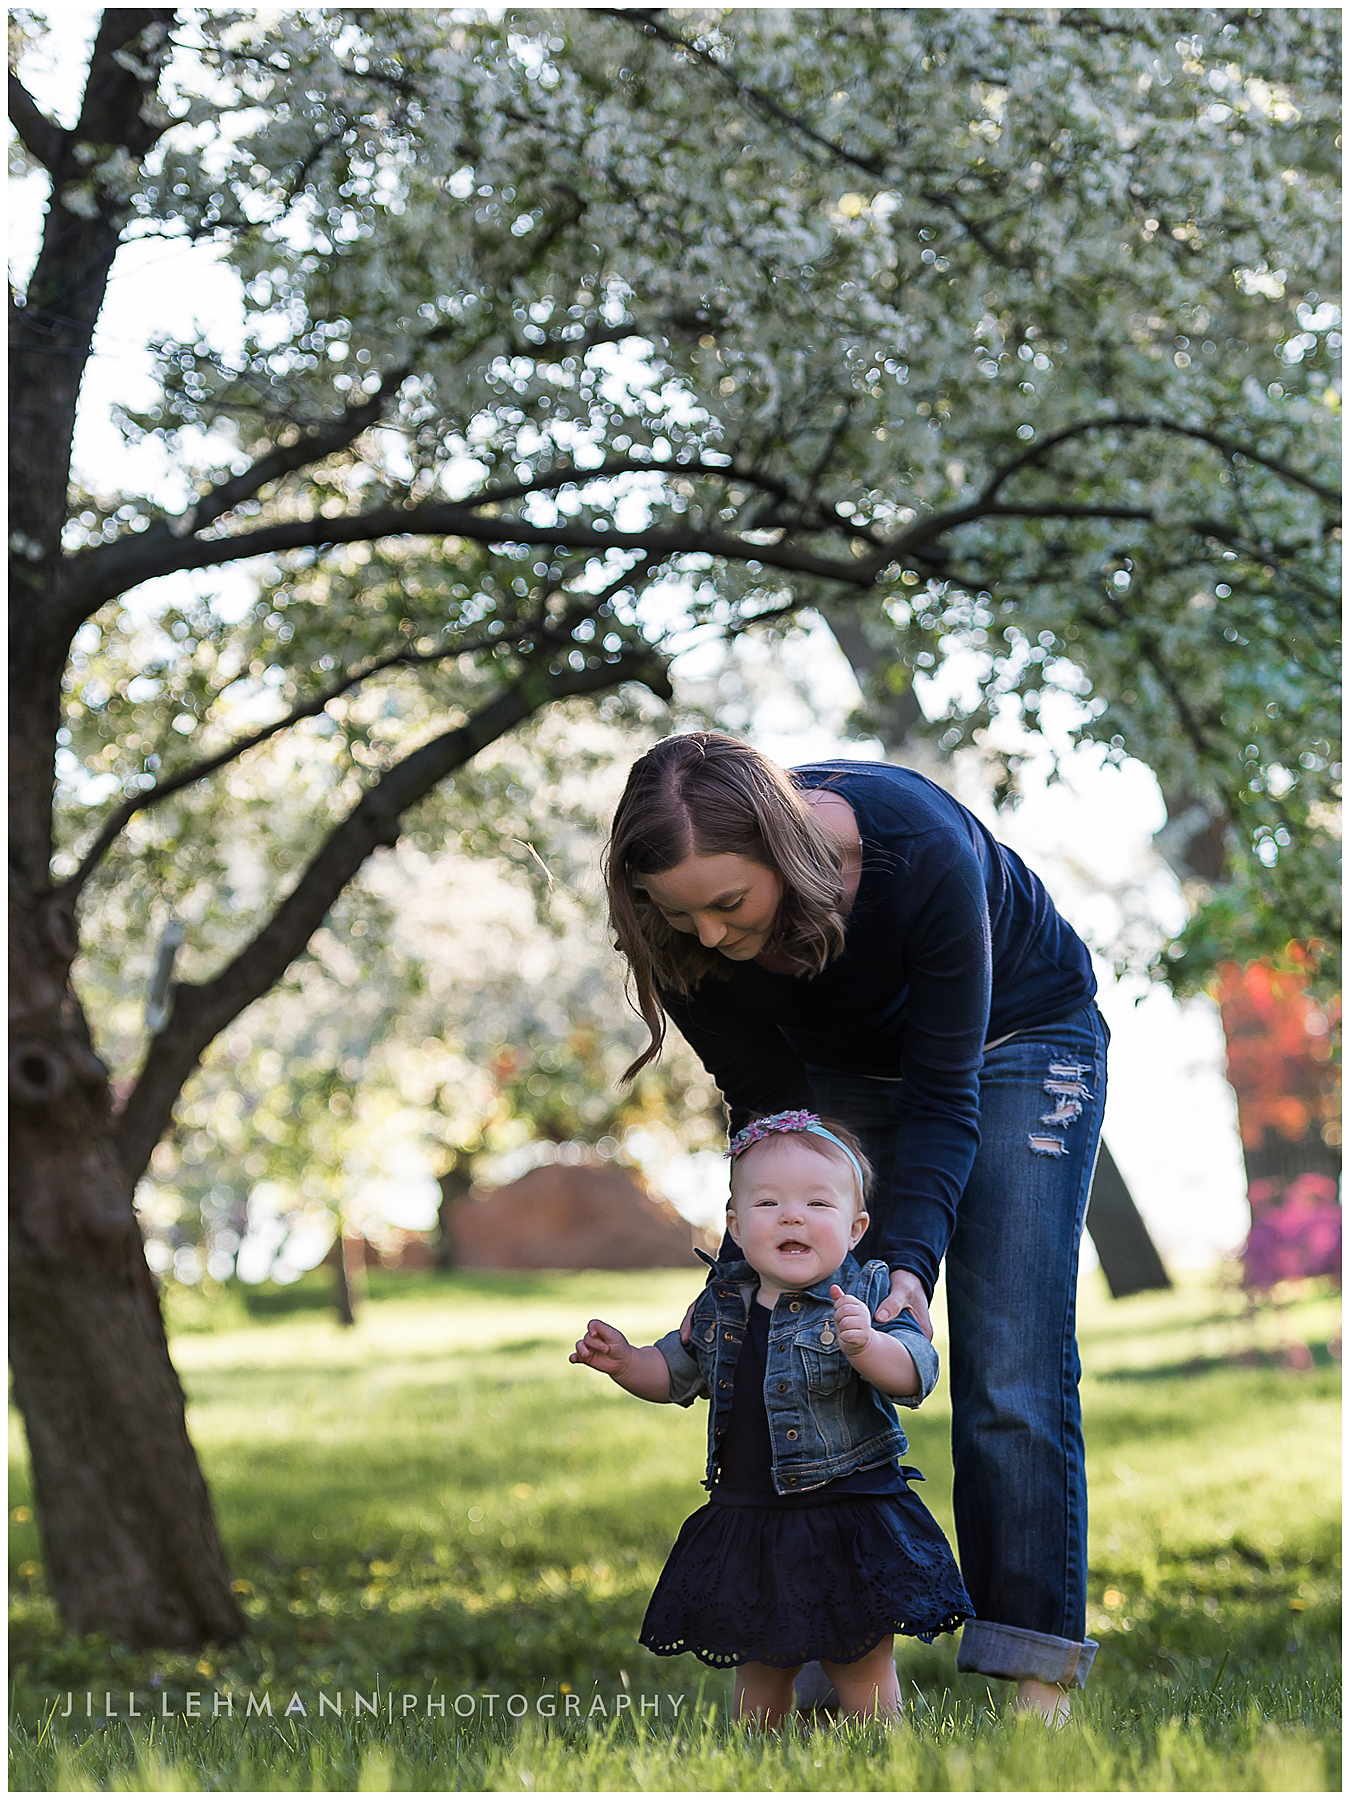 Baby / Child / Family Photography in Des Moines, IA